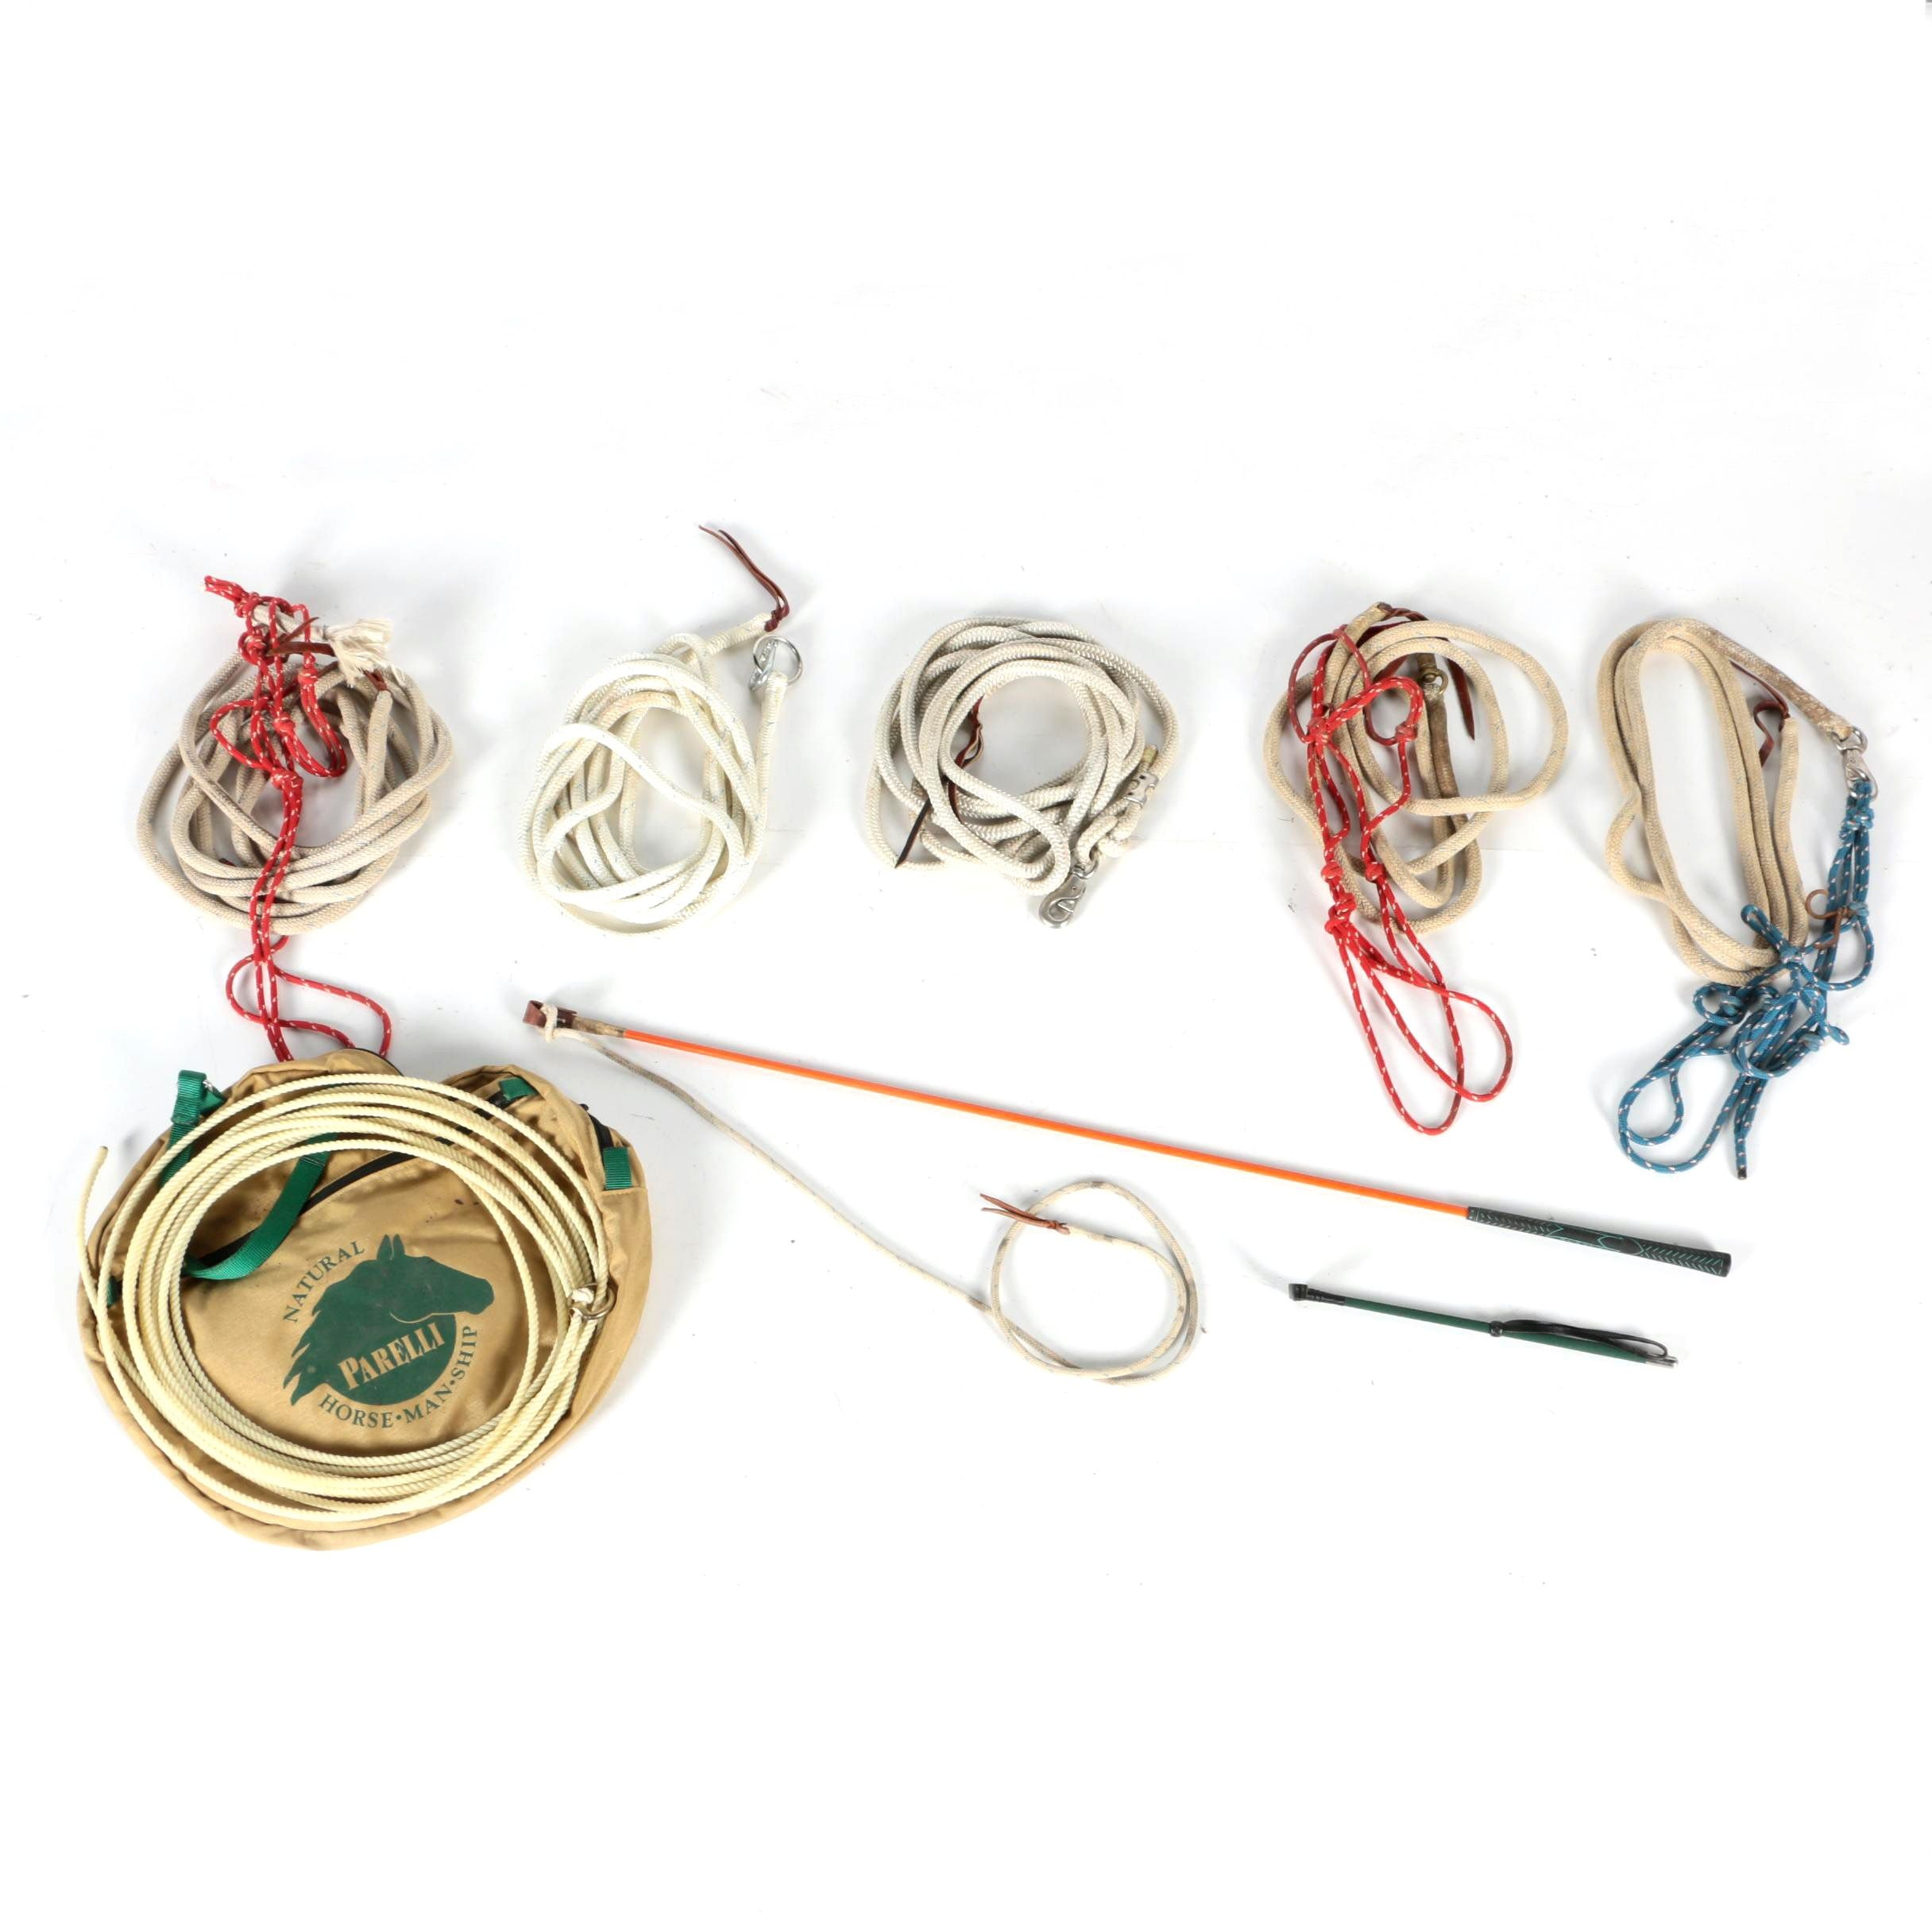 Parelli and Other Lead Ropes with Riding Crop and Whip